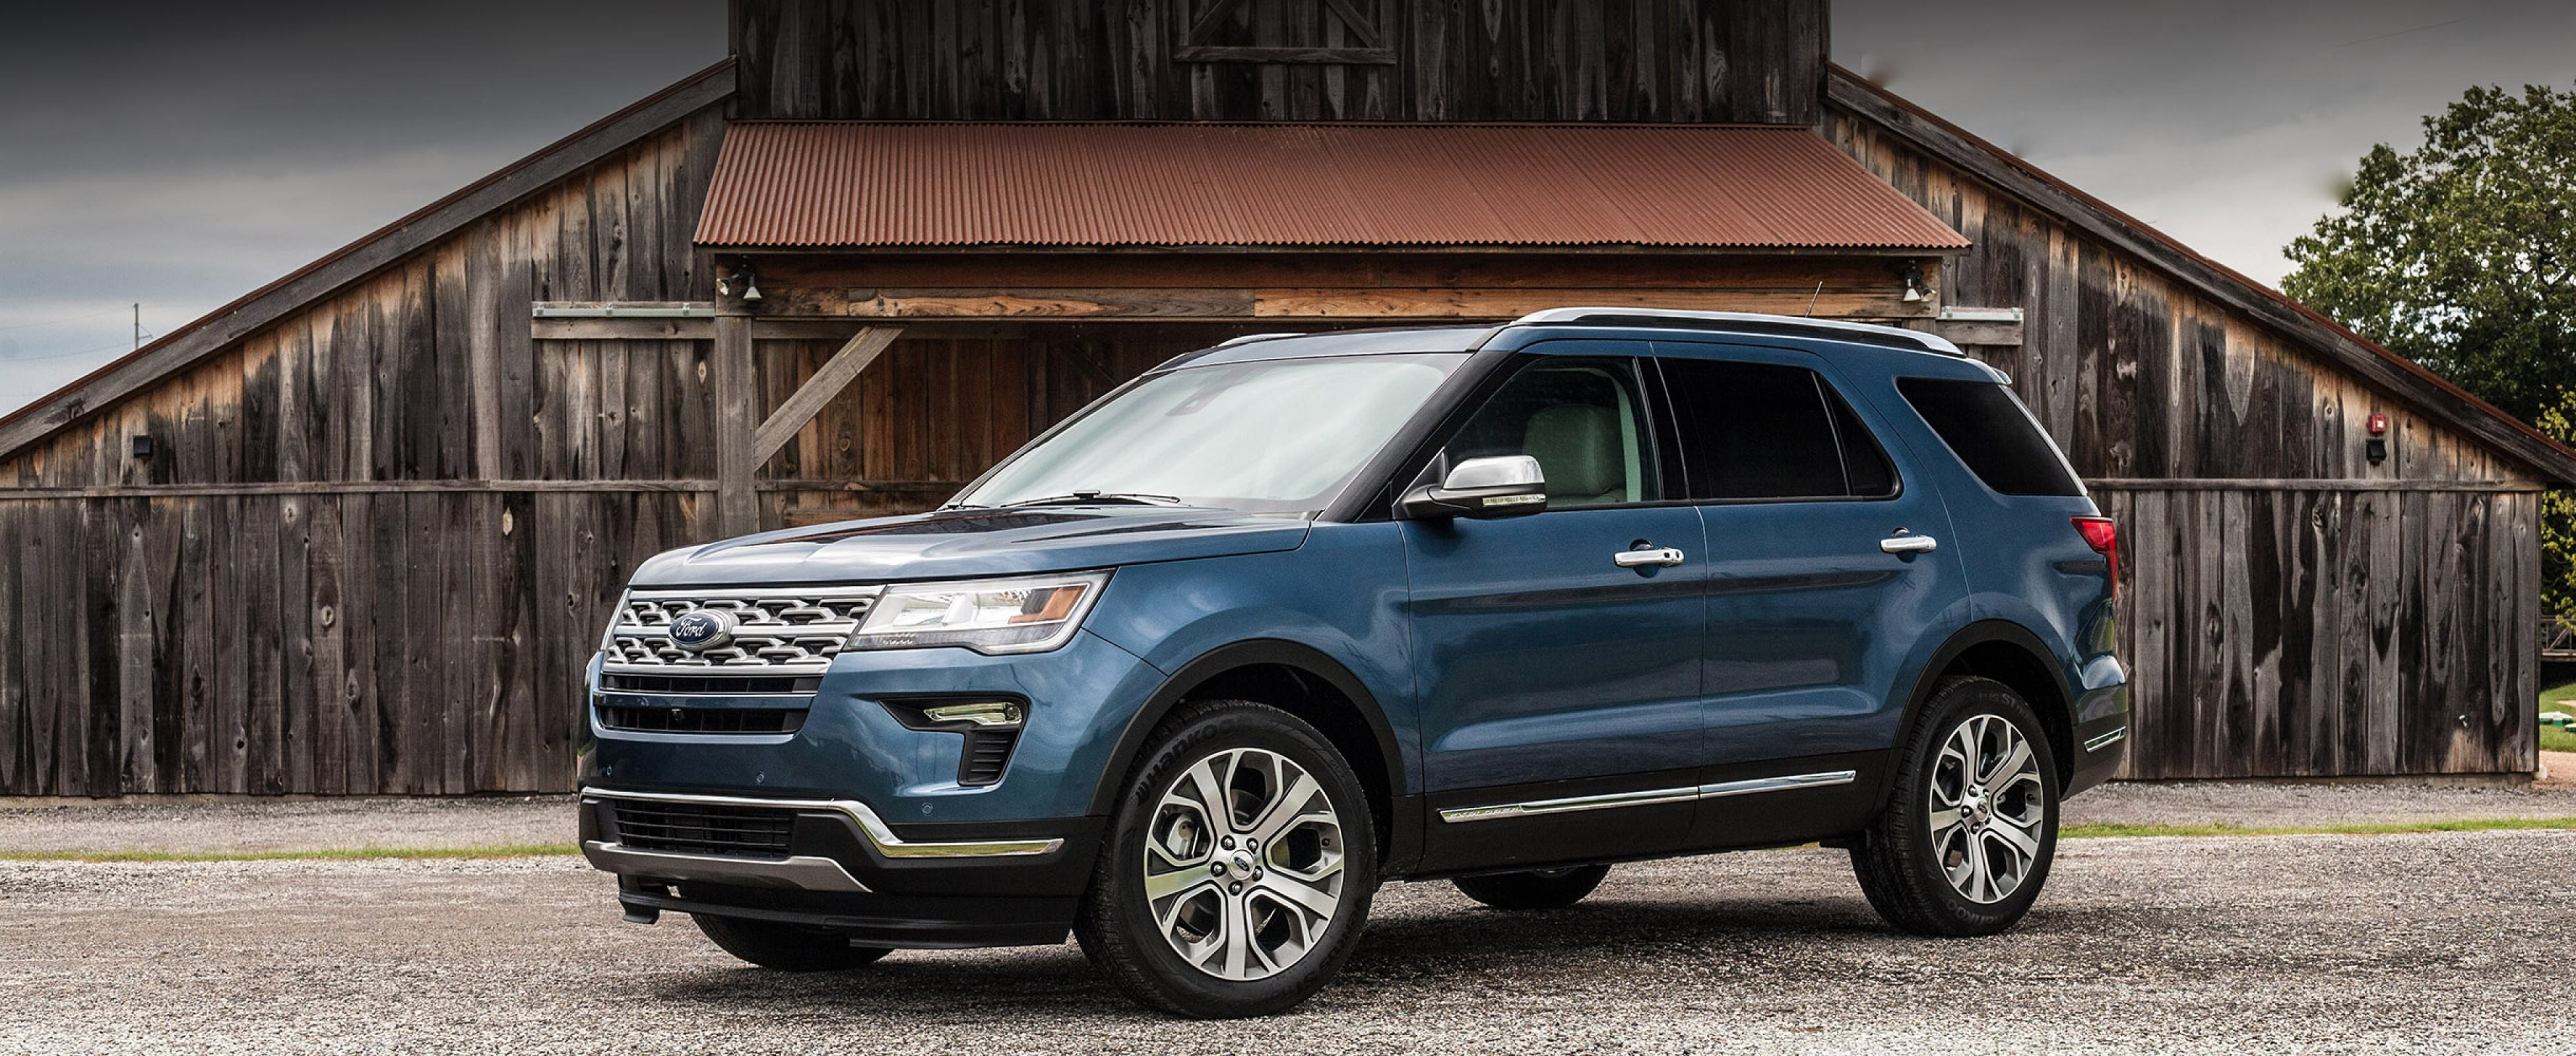 Elite 7 Seater Suv Rental Ford Explorer Or Similar Budget Rent A Car